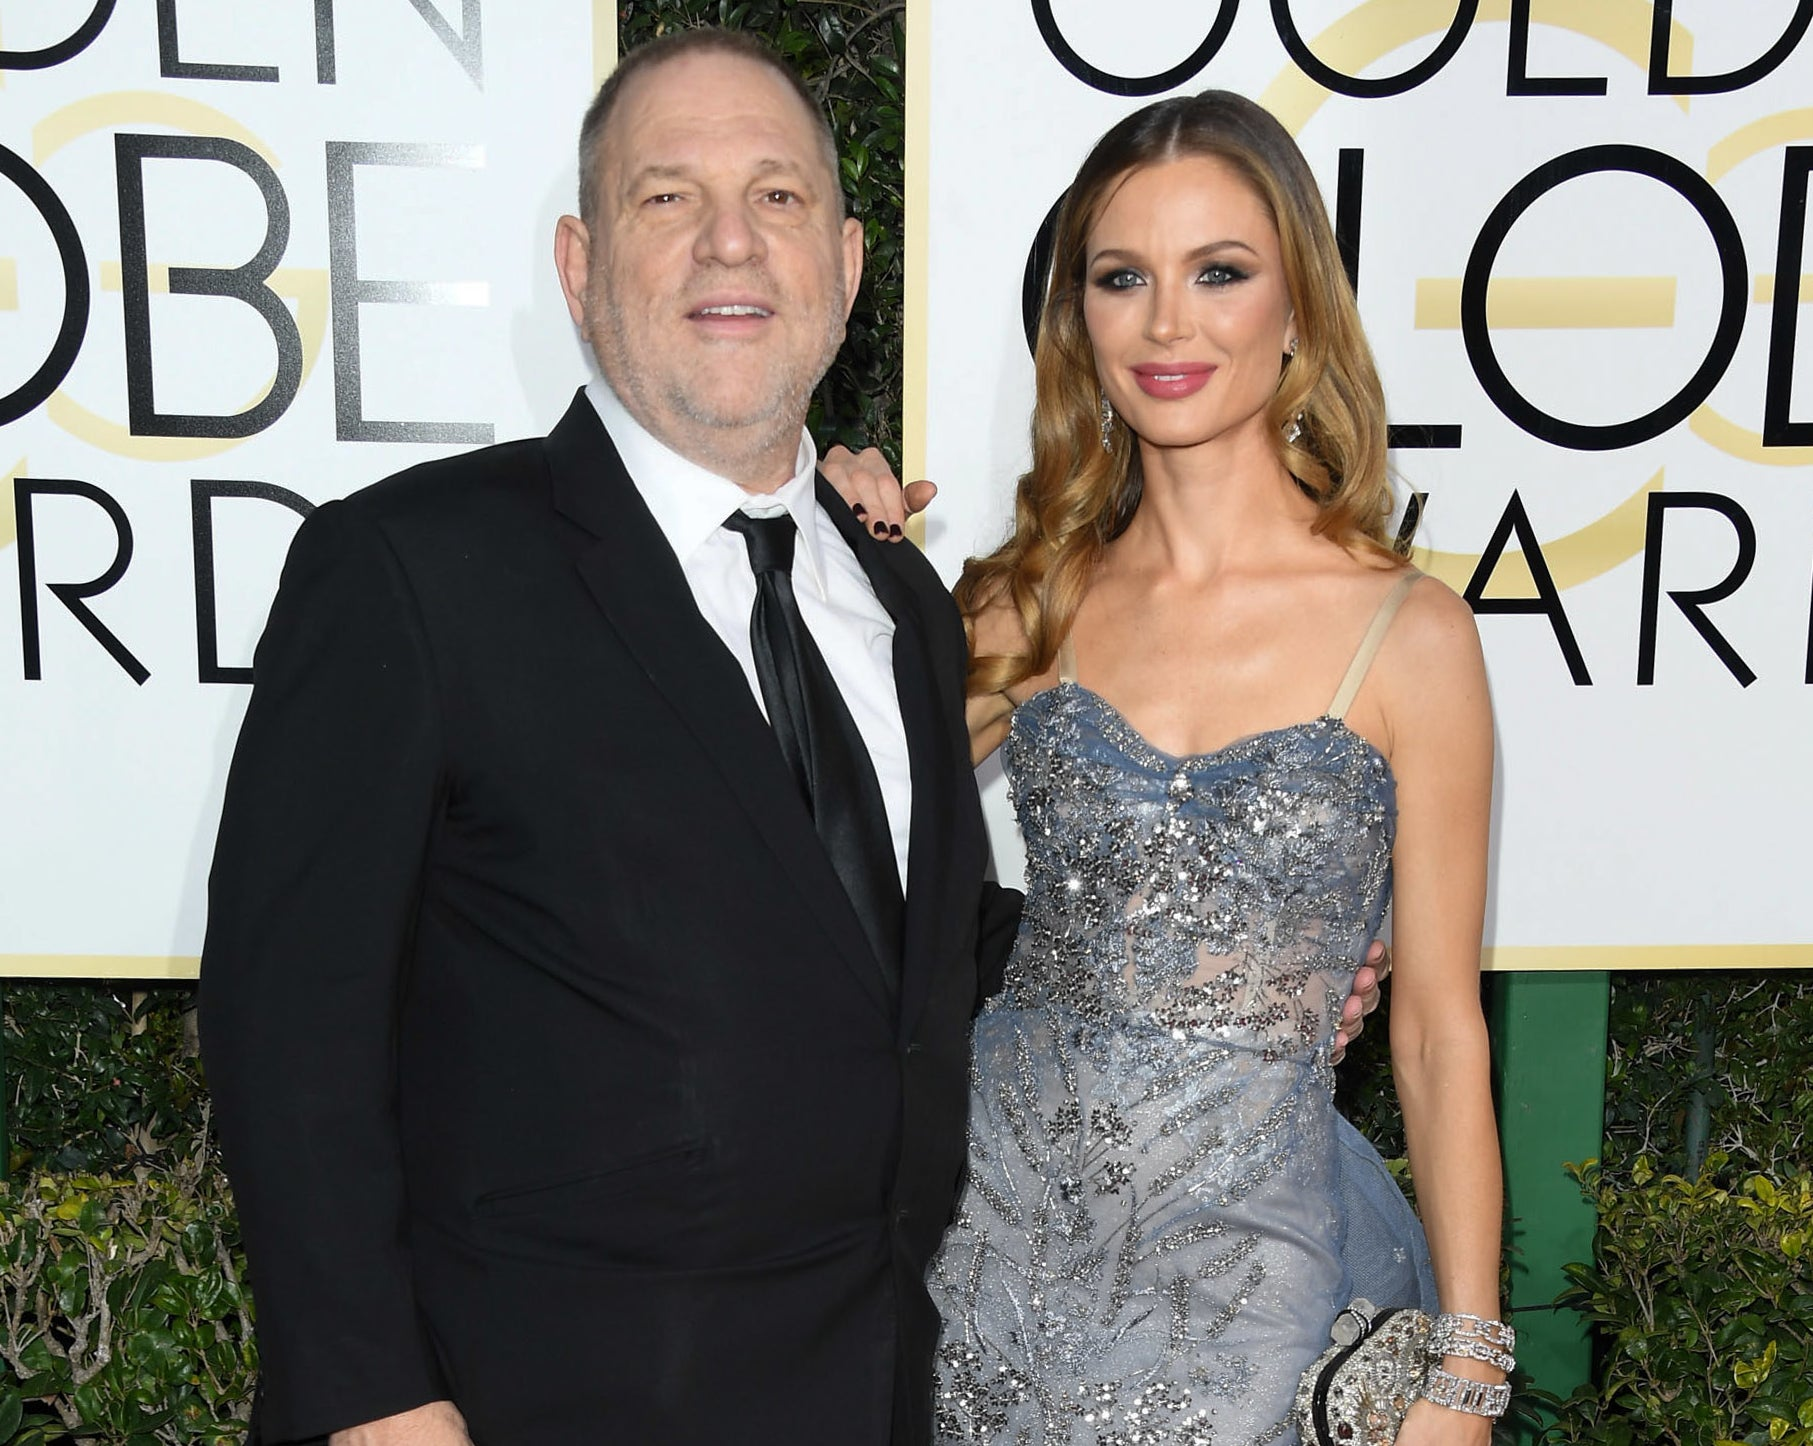 Harvey attends the Golden Globes in the past